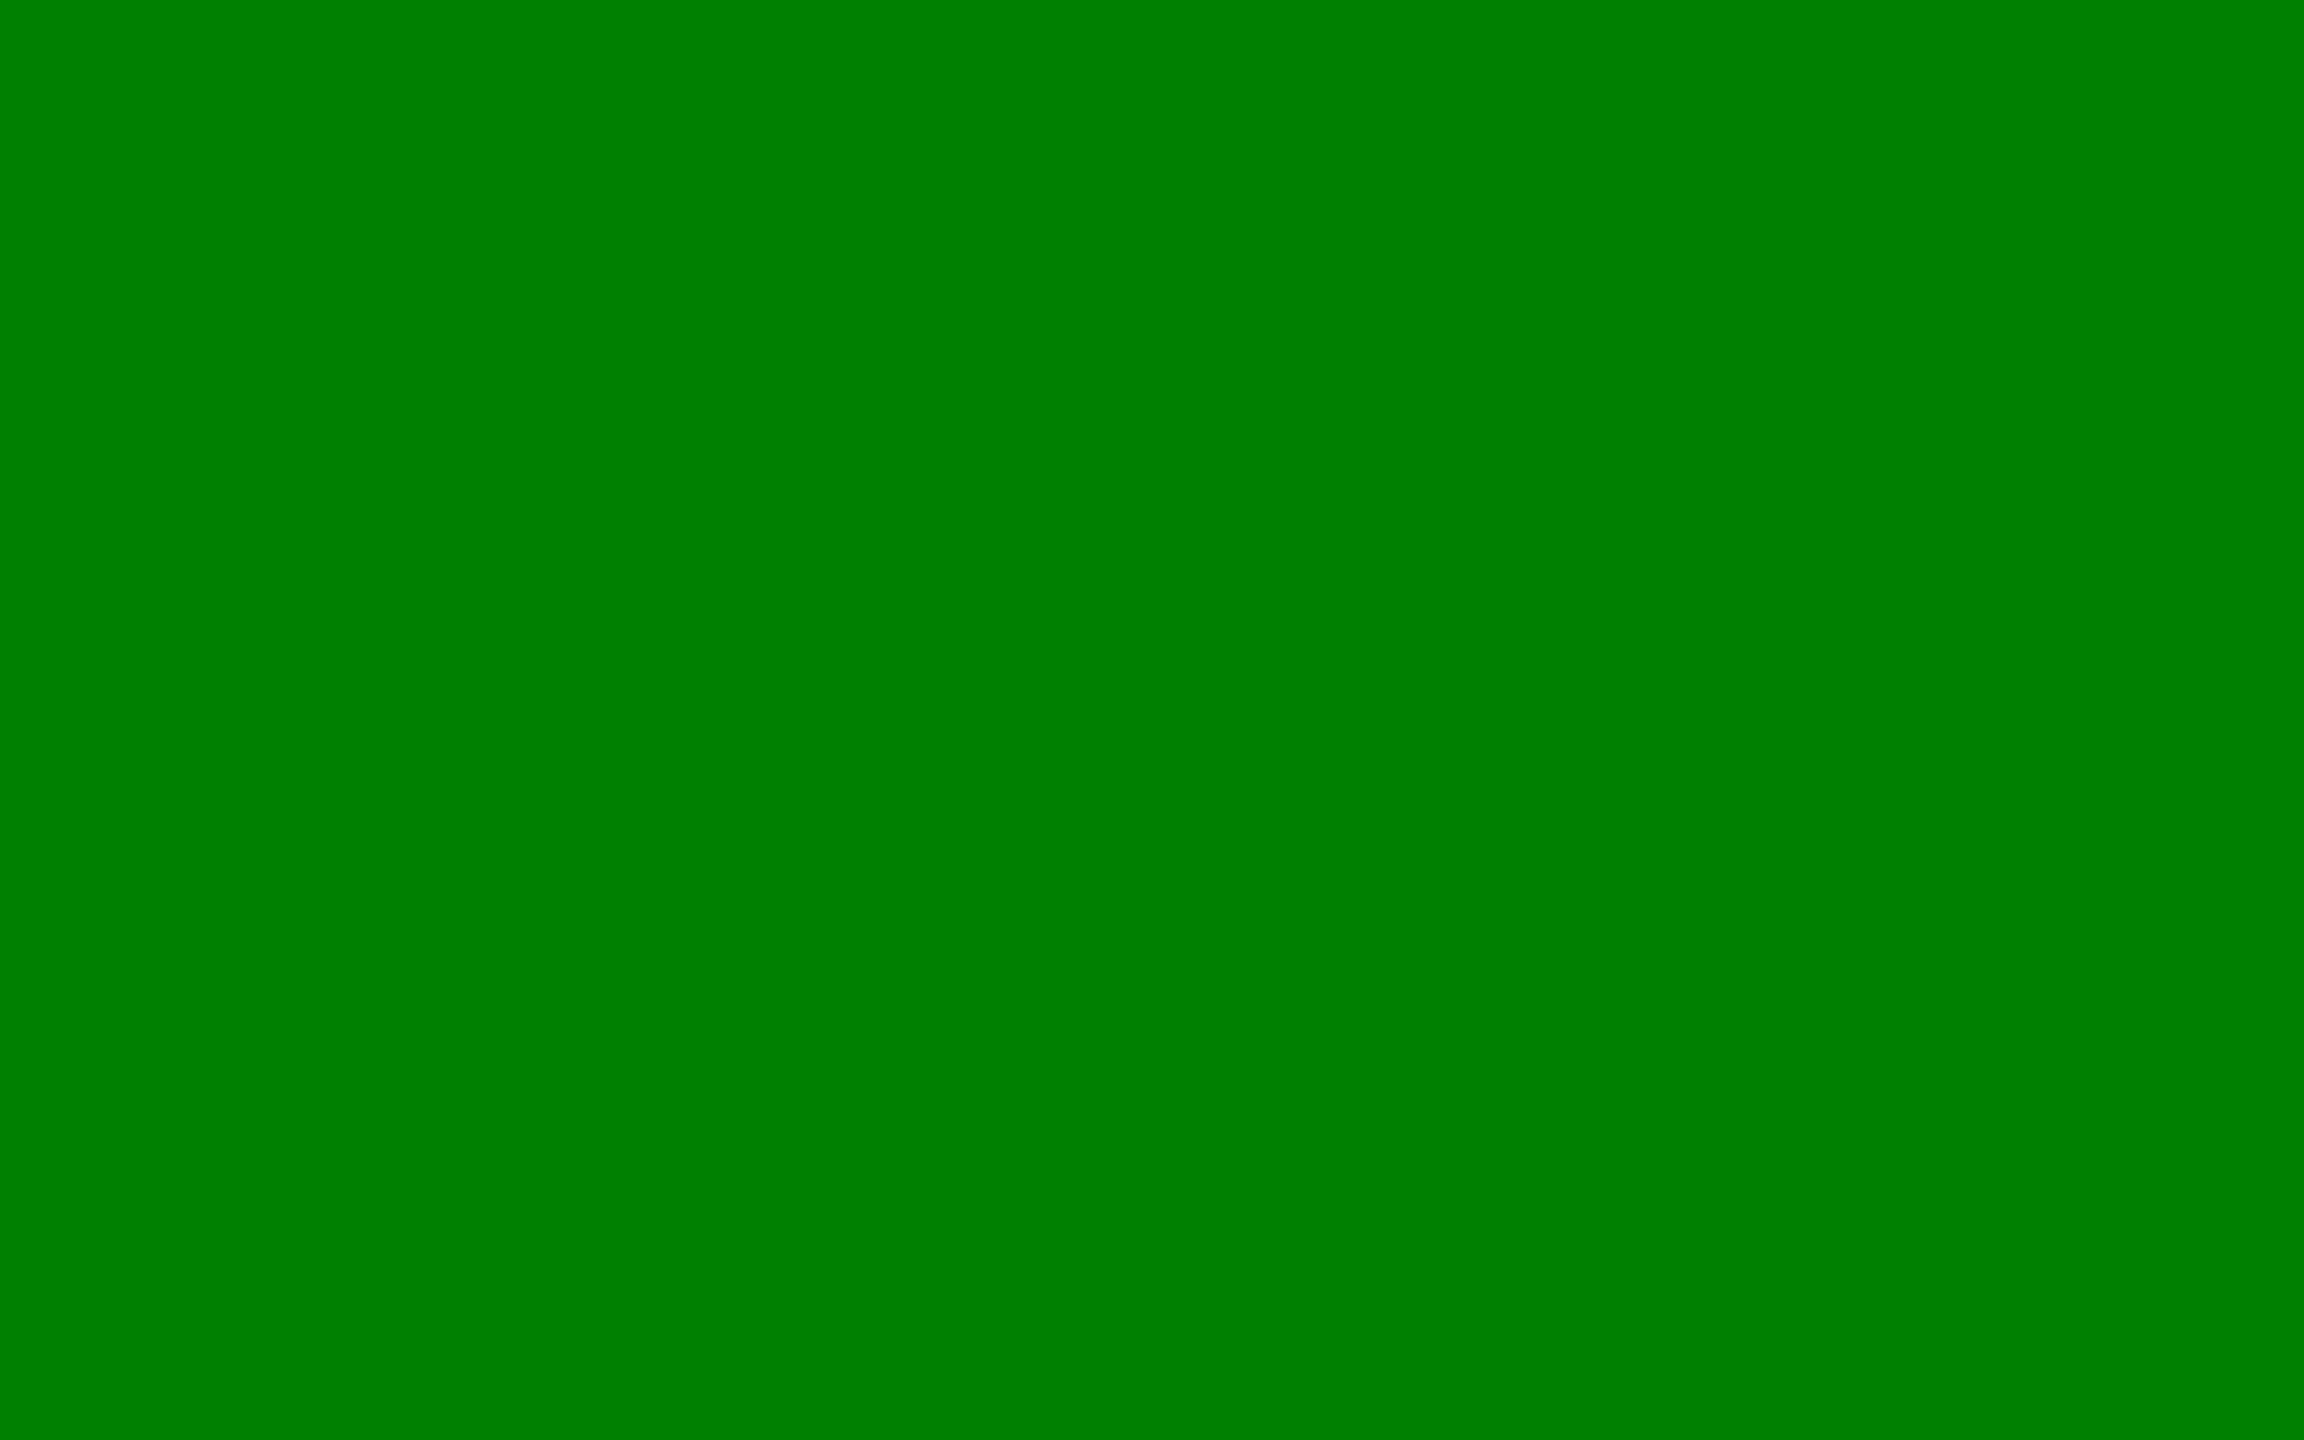 2304x1440 Office Green Solid Color Background